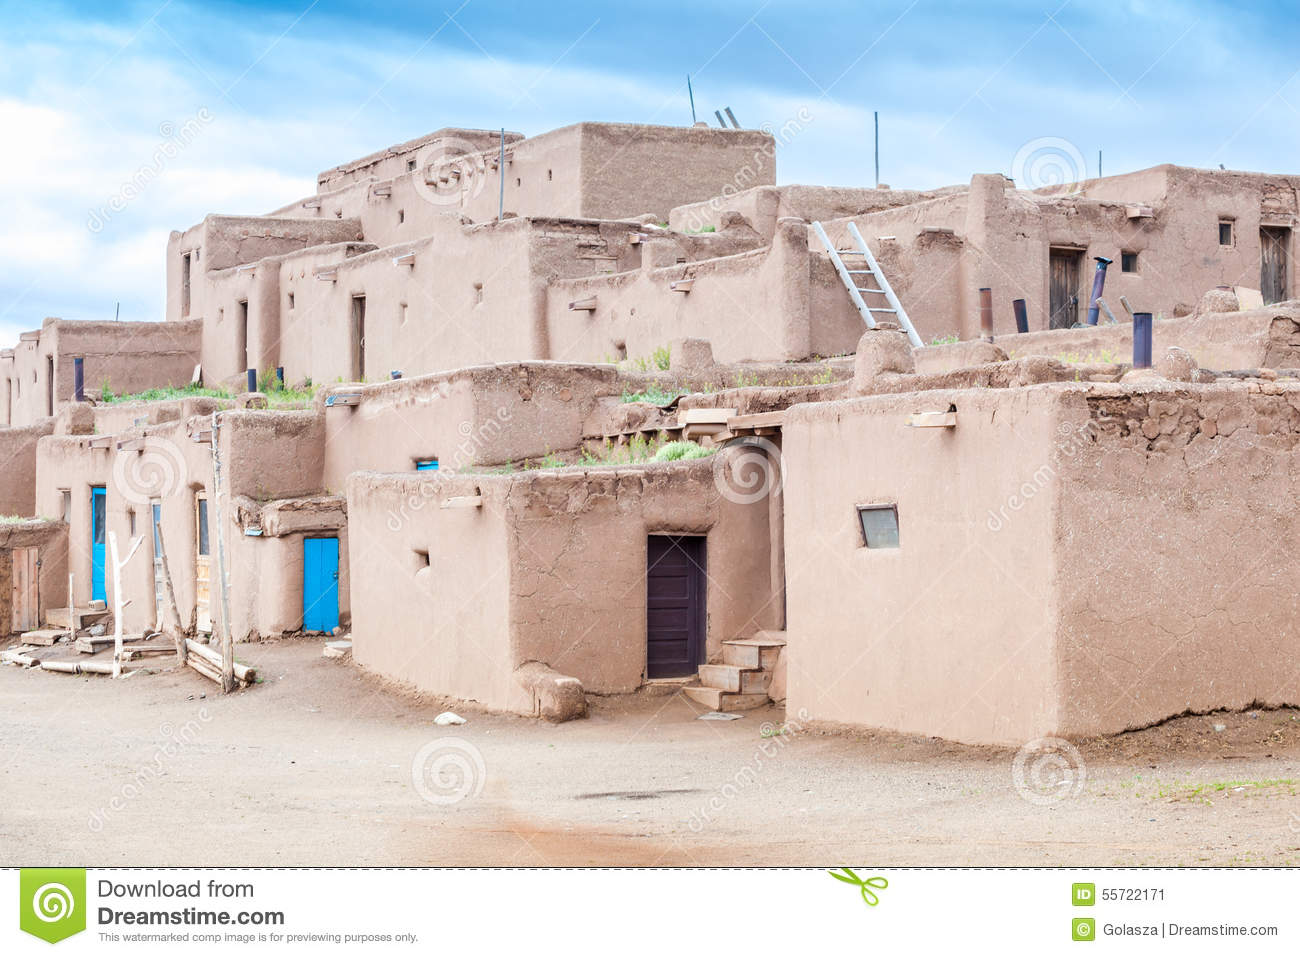 6ecd70c86702 Adobe settlement – consisting of dwellings and ceremonial buildings –  represents the culture of the Pueblo Indians of Arizona and New Mexico.